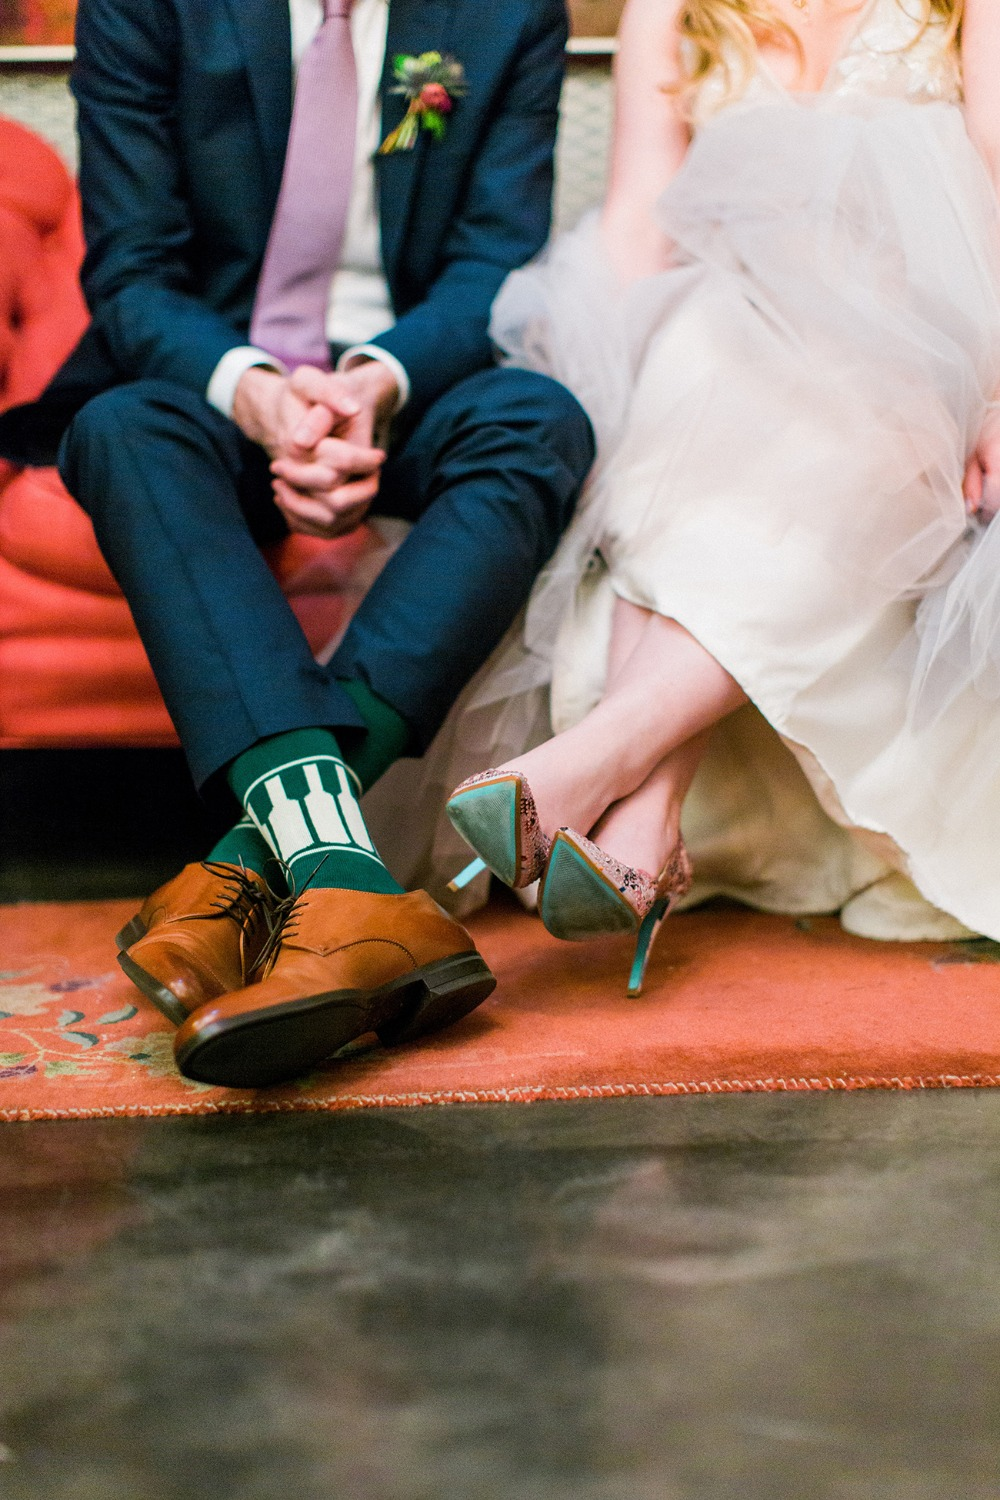 her shoes and his socks